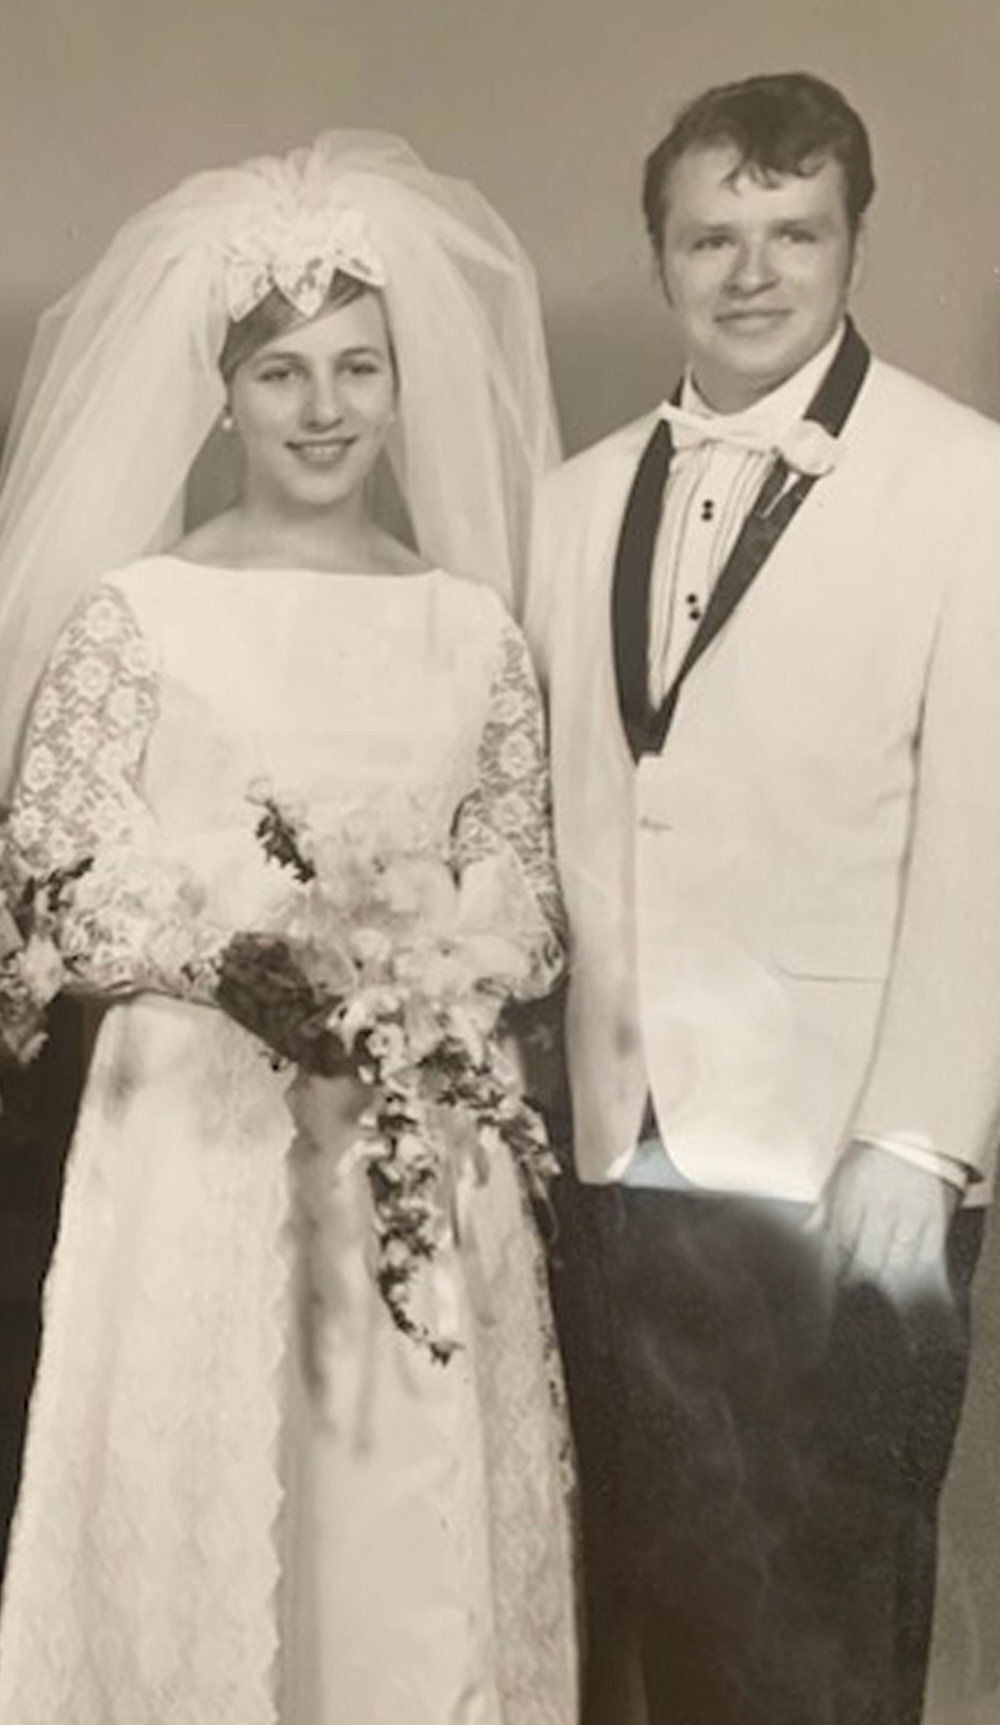 Mr. and Mrs. Charles Kelly